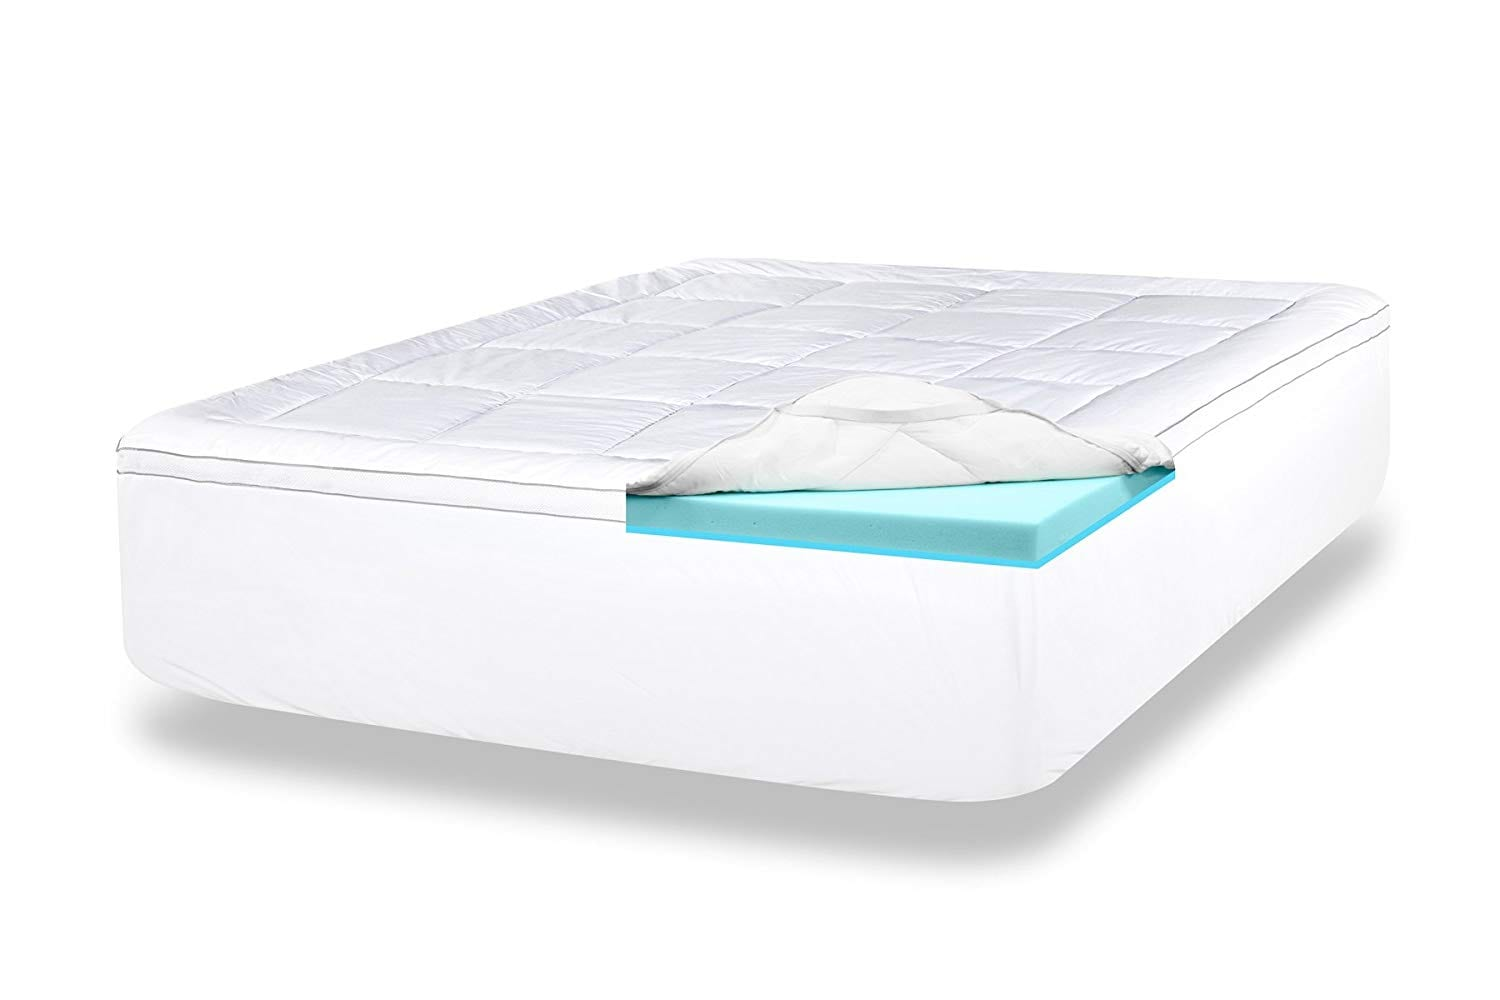 ViscoSoft Best Mattress Topper for Back Pain Review by www.snoremagazine.com